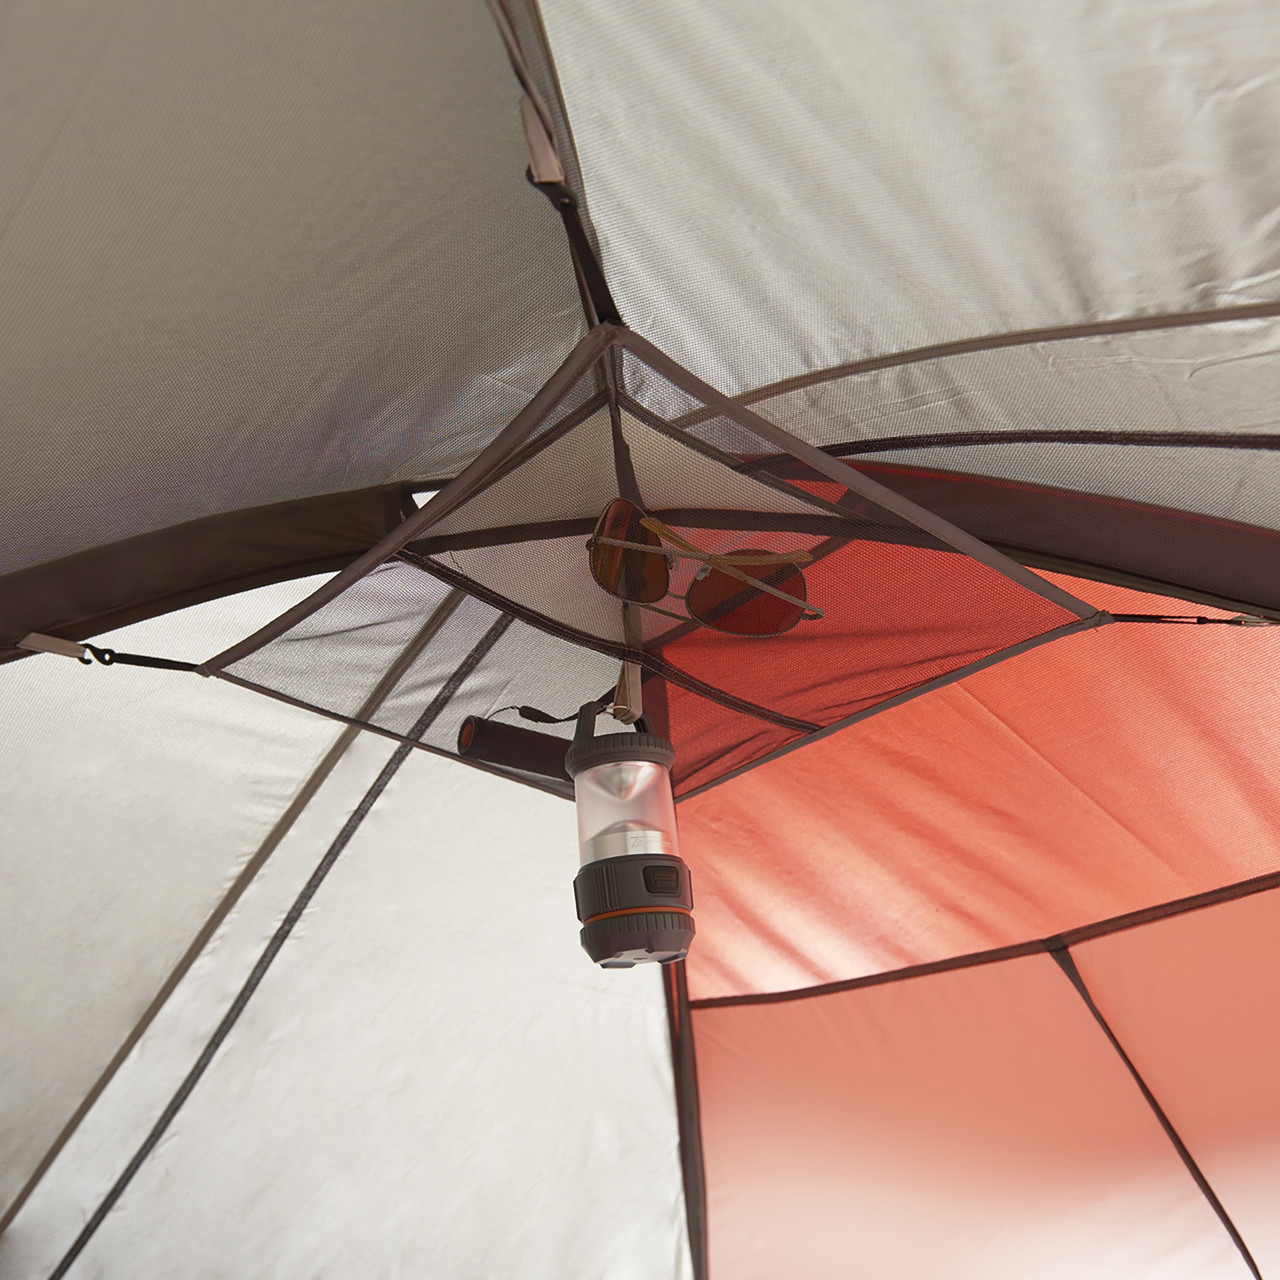 Interior close up of Wenzel Bristlecone 8 Person Dome Tent, showing gear loft